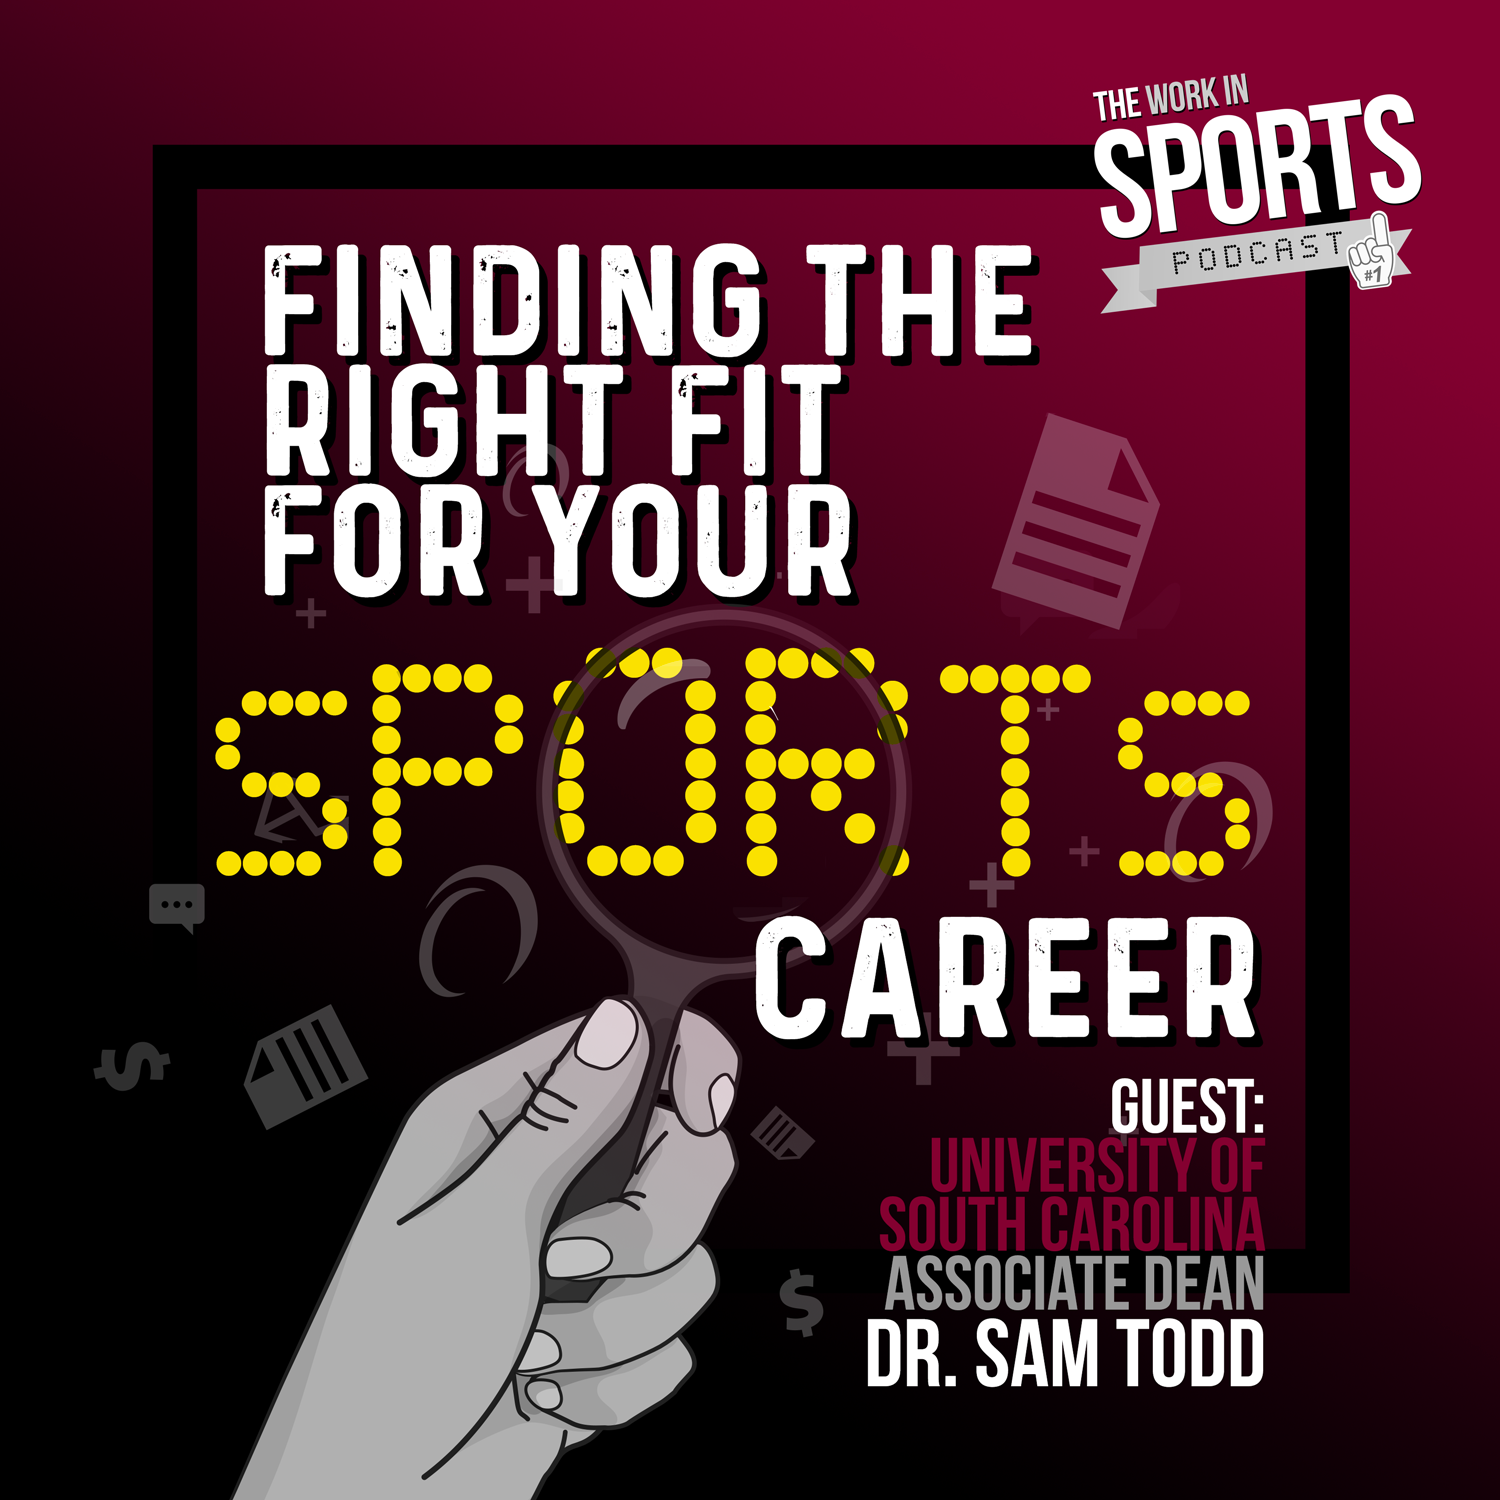 finding the right fit for your sports career